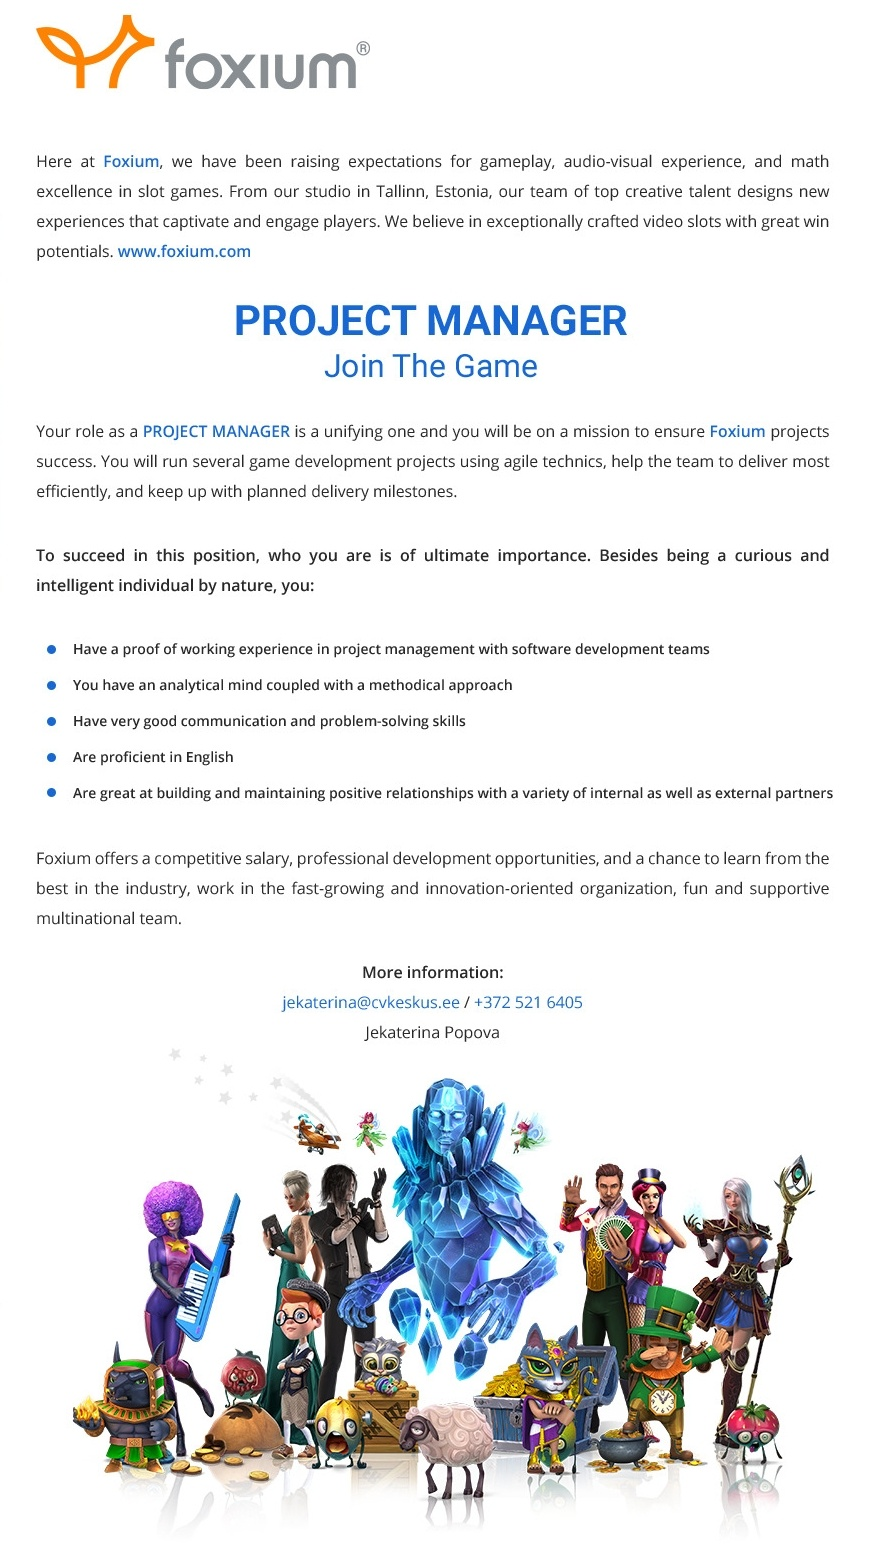 Foxium OÜ PROJECT MANAGER - JOIN THE GAME